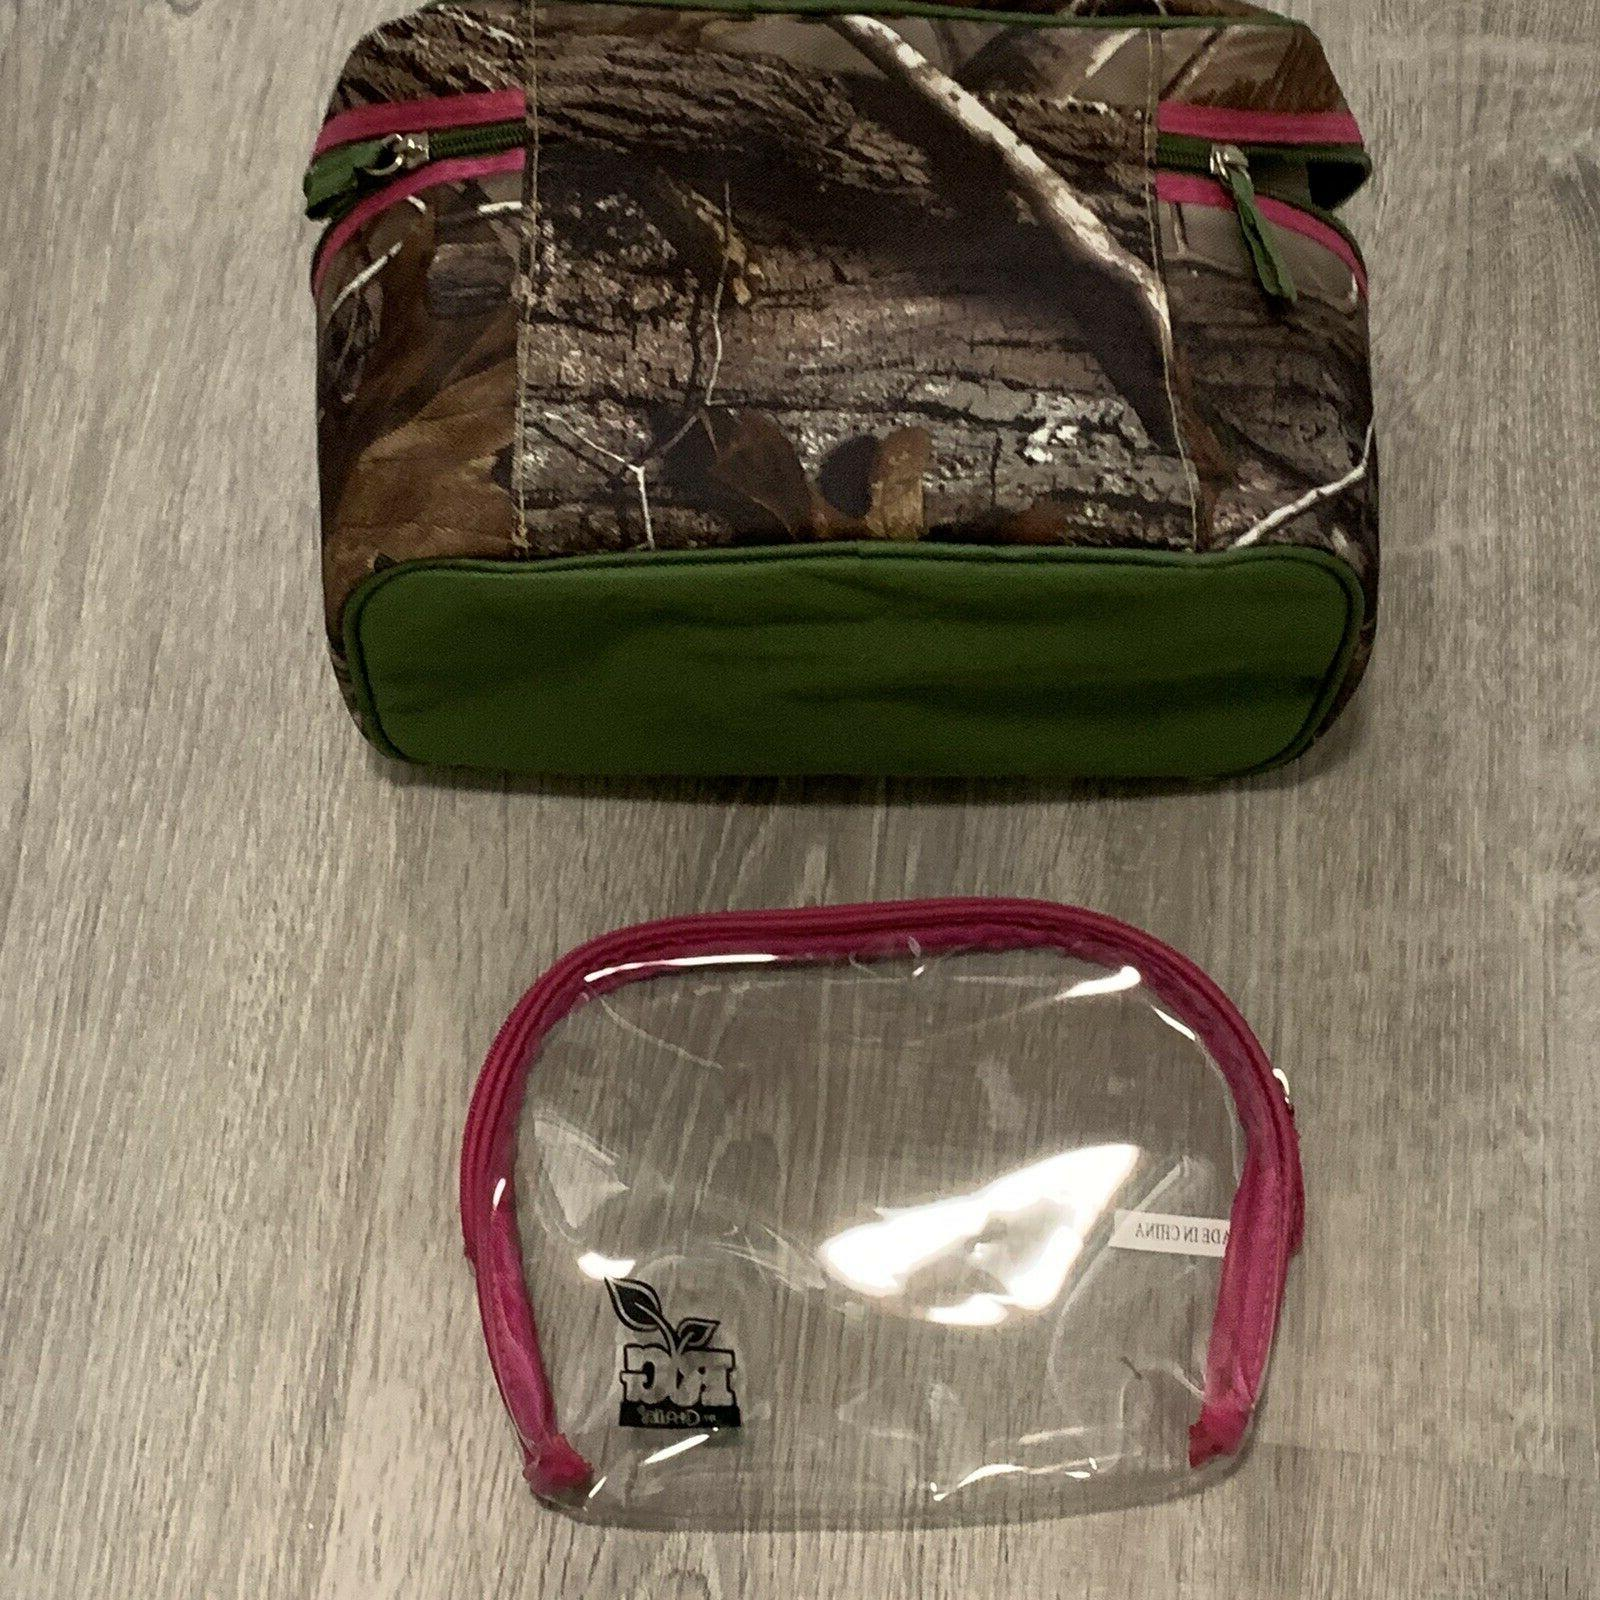 Caboodles Set Green Zip TW58